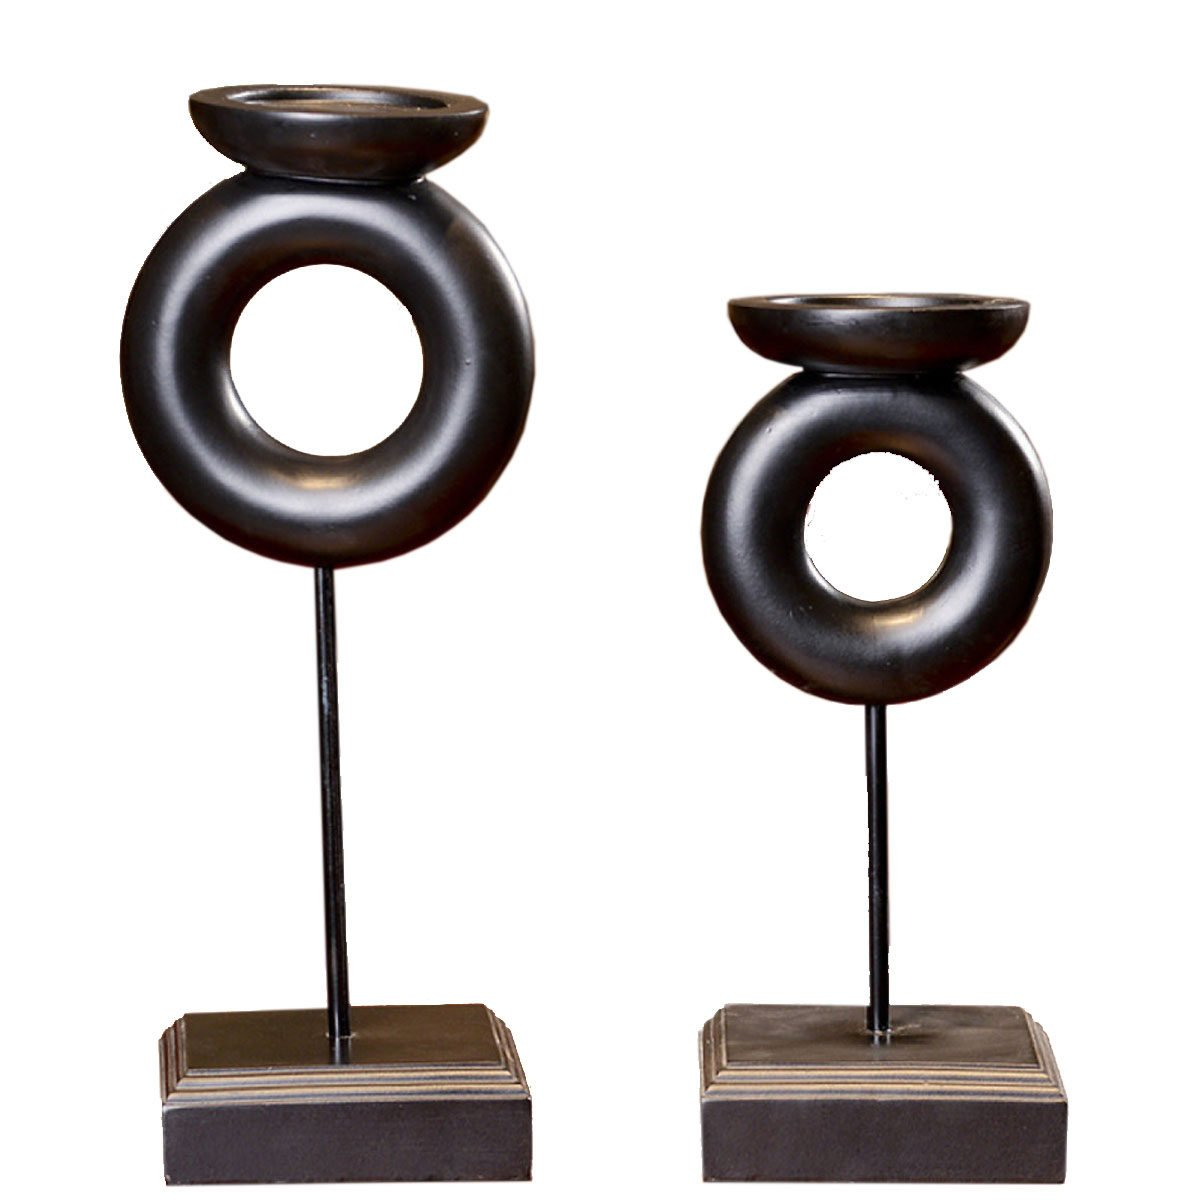 Elegant Vintage Resin Candle Wedding Candlestick Statue Lovely Decor Candle Holder Props Art Sculpture Brown Crafts A Pair